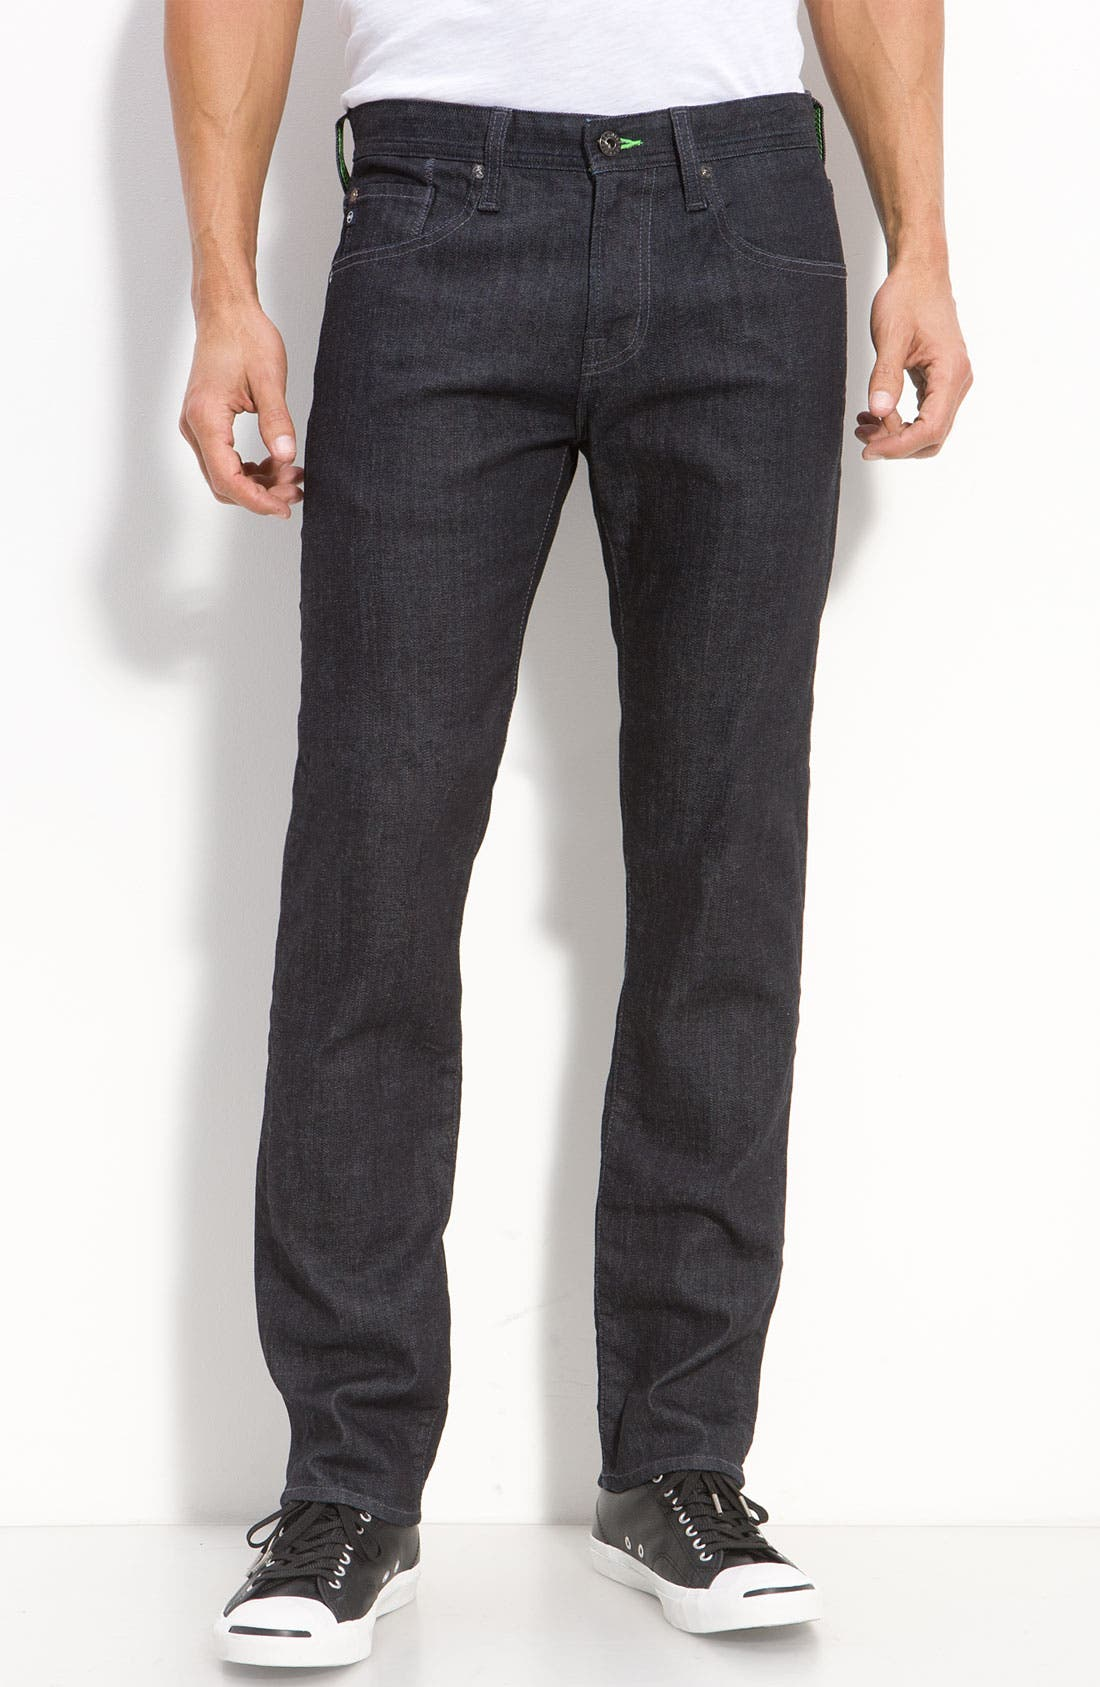 Main Image - AG Jeans 'Matchbox' Slim Straight Leg Jeans (Jake) (Save Now through 12/9)